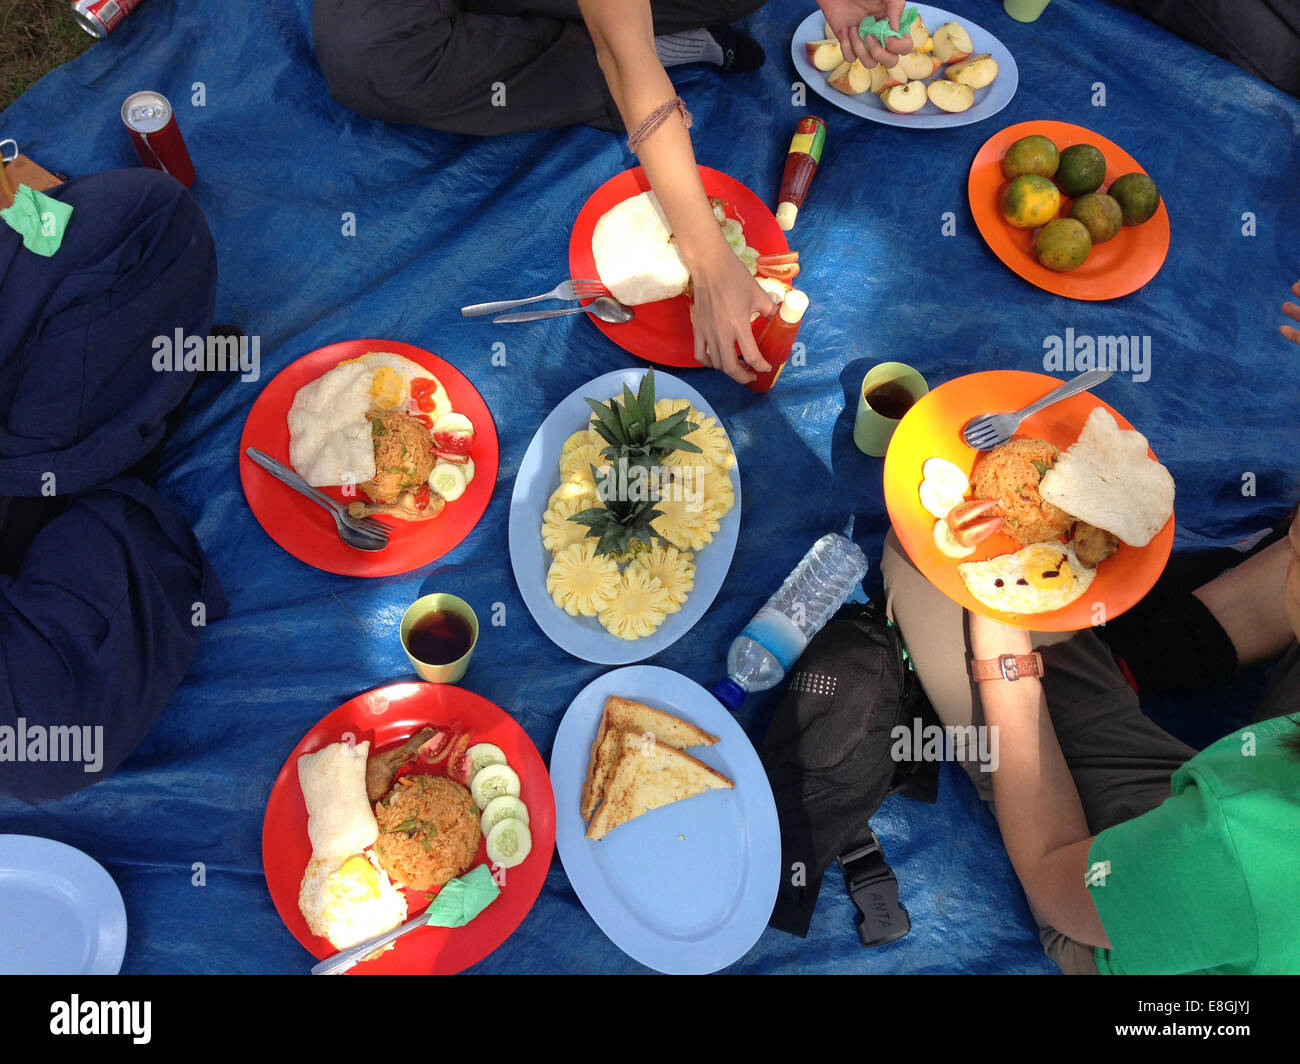 Indonesia, West Nusa Tenggara, Mataram, Mount Rinjani, Outdoor picnic - Stock Image